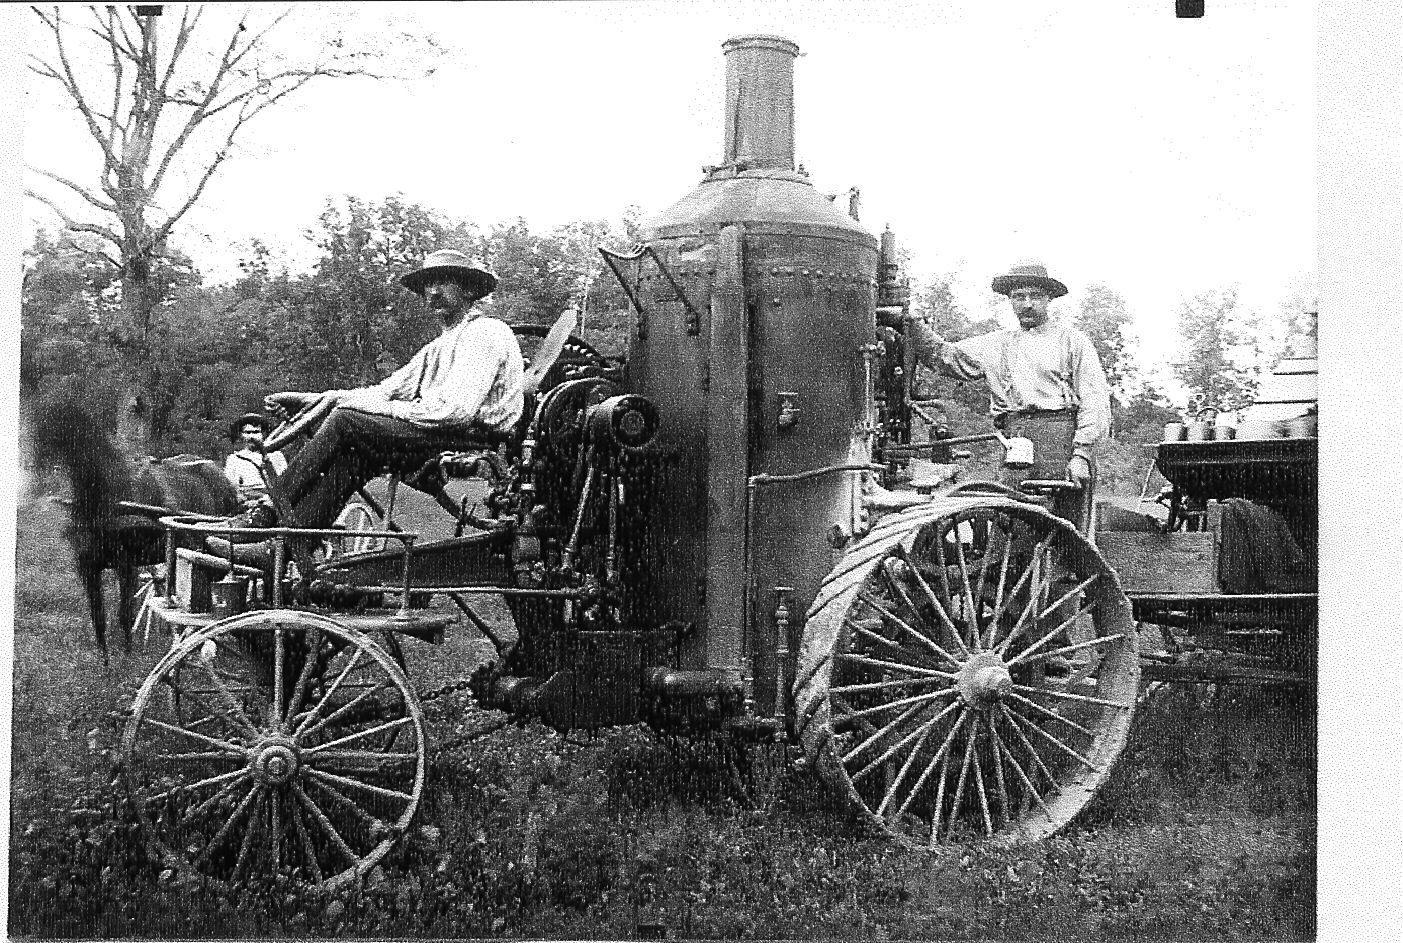 life in the 1800s photos | Image of threshing machine. A ...